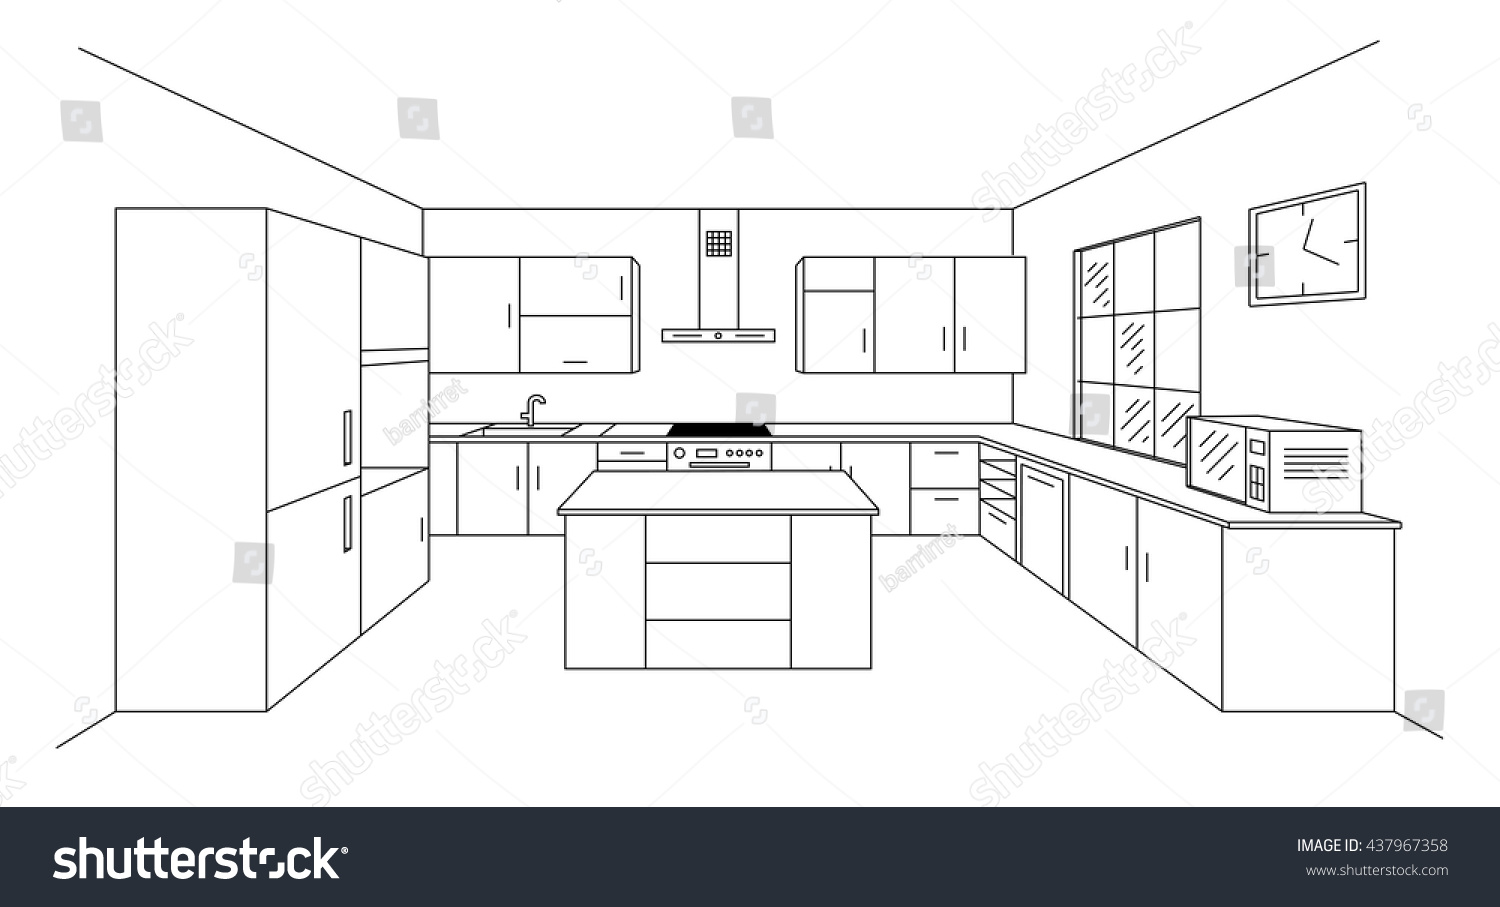 Sketch modern kitchen plan island single stock vector for Interior design images vector